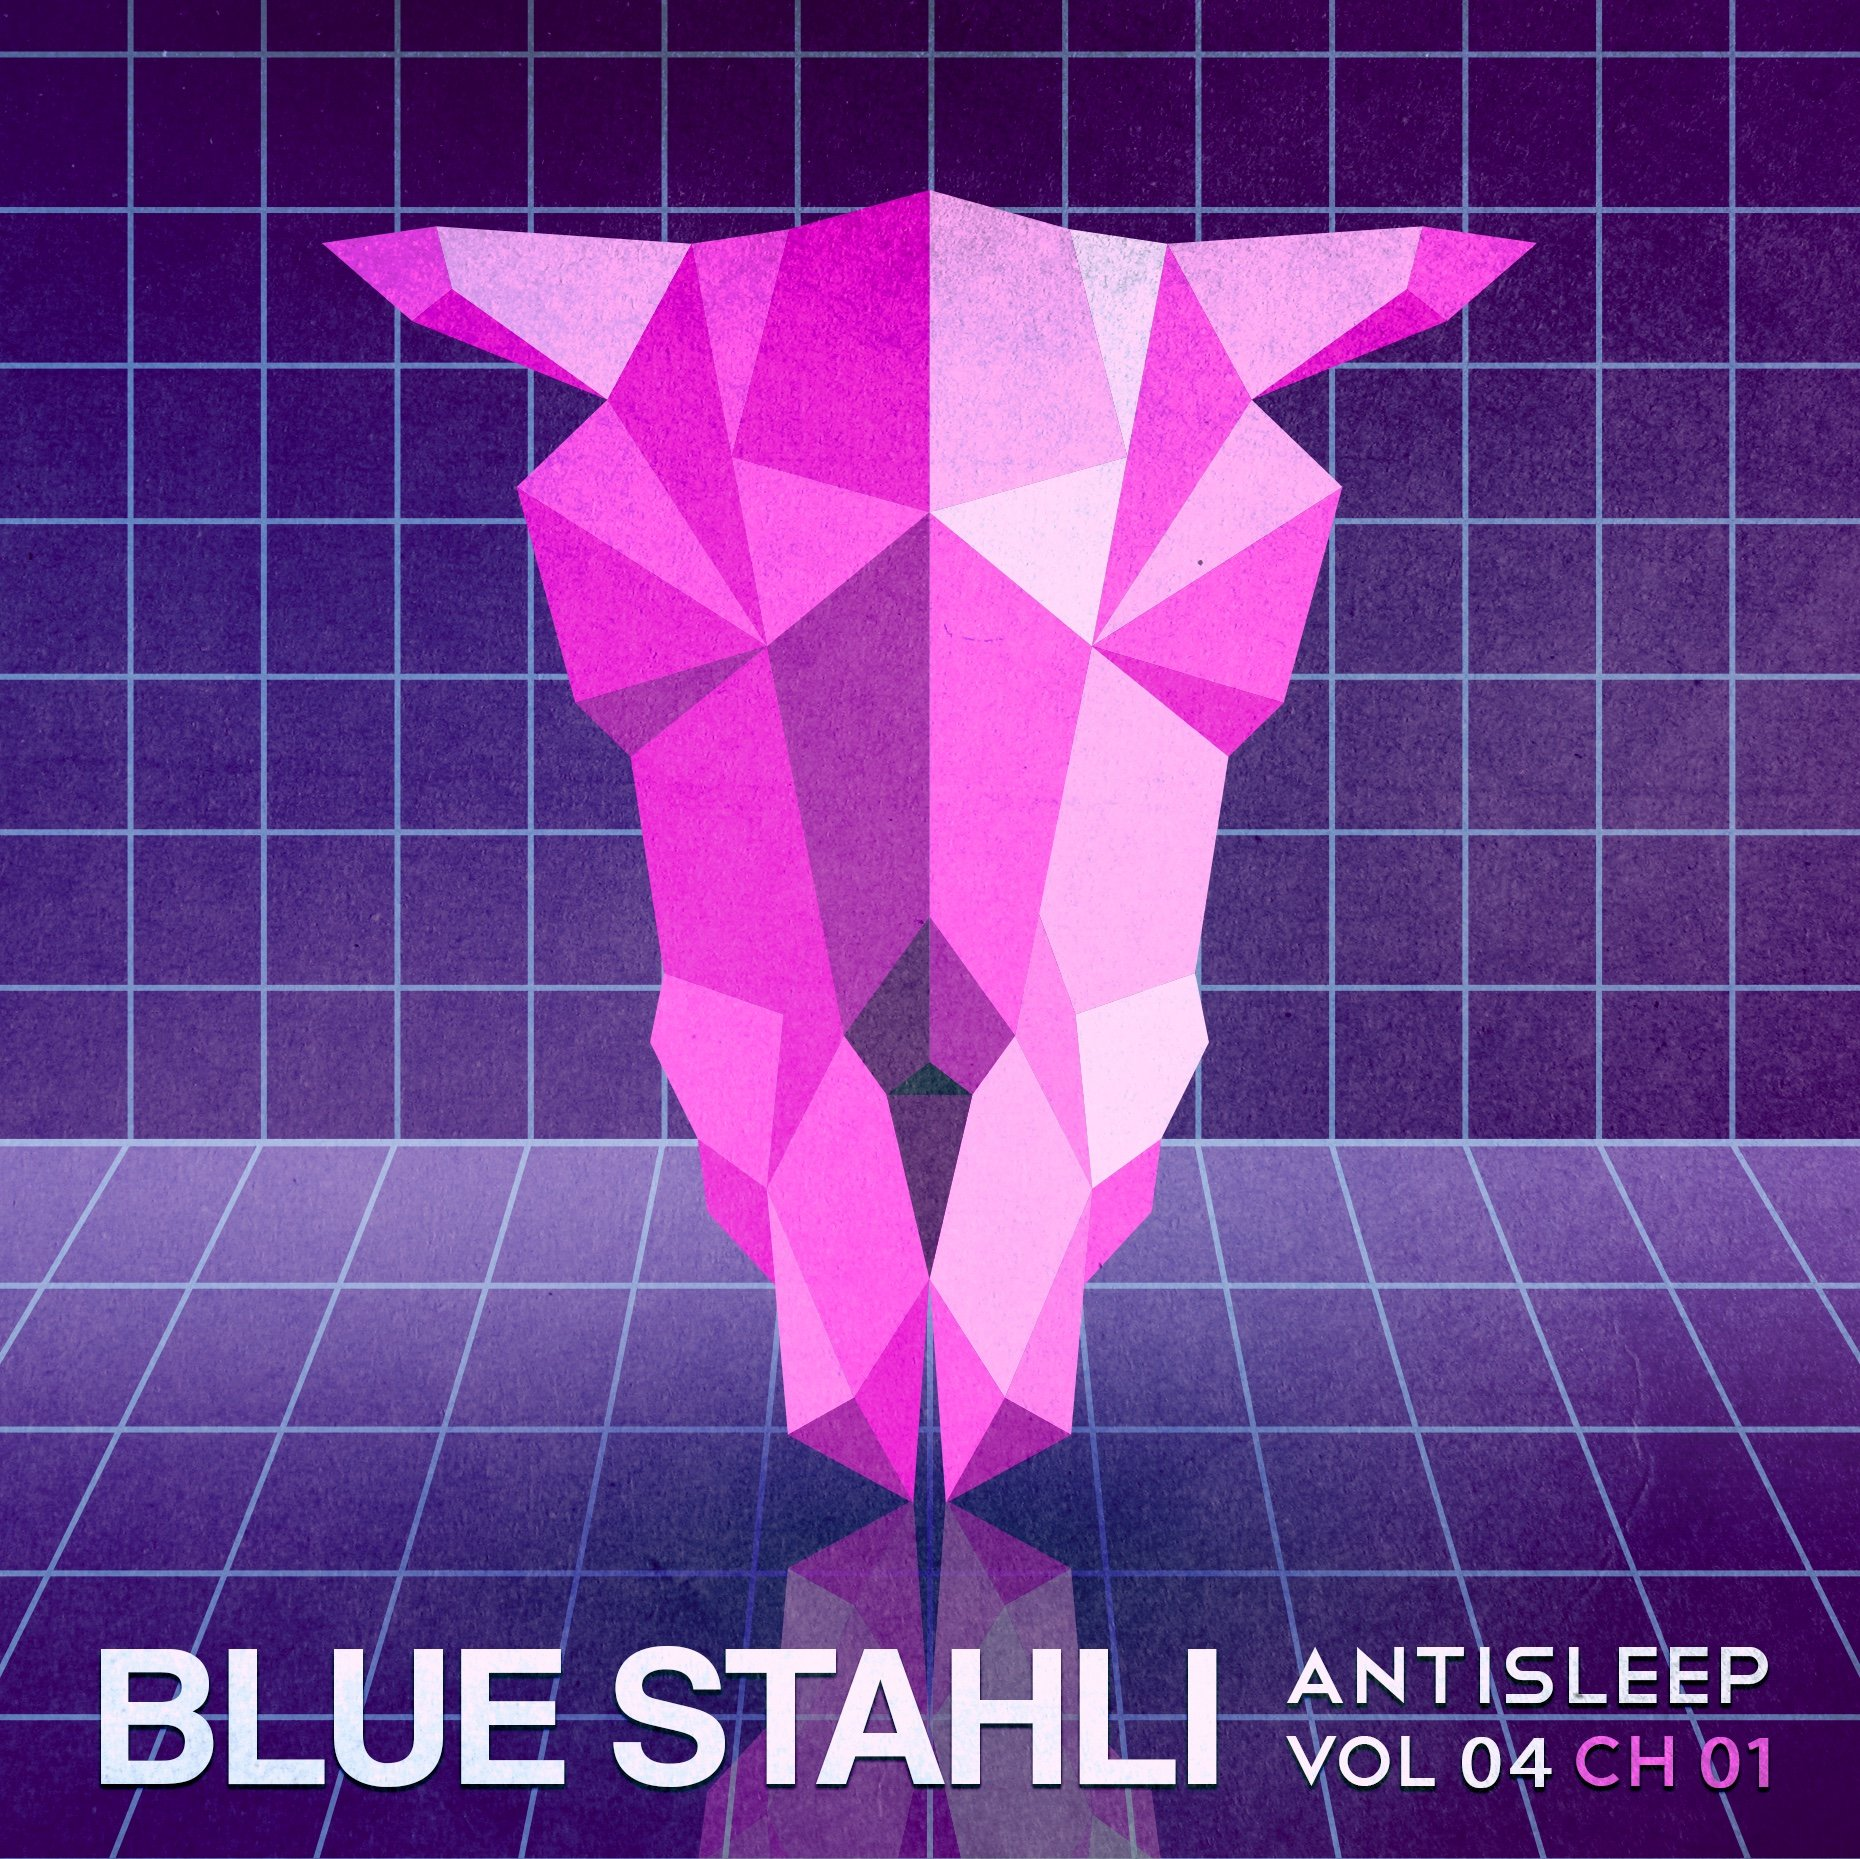 Blue Stahli album Antisleep Vol. 04 (Ch. 01)